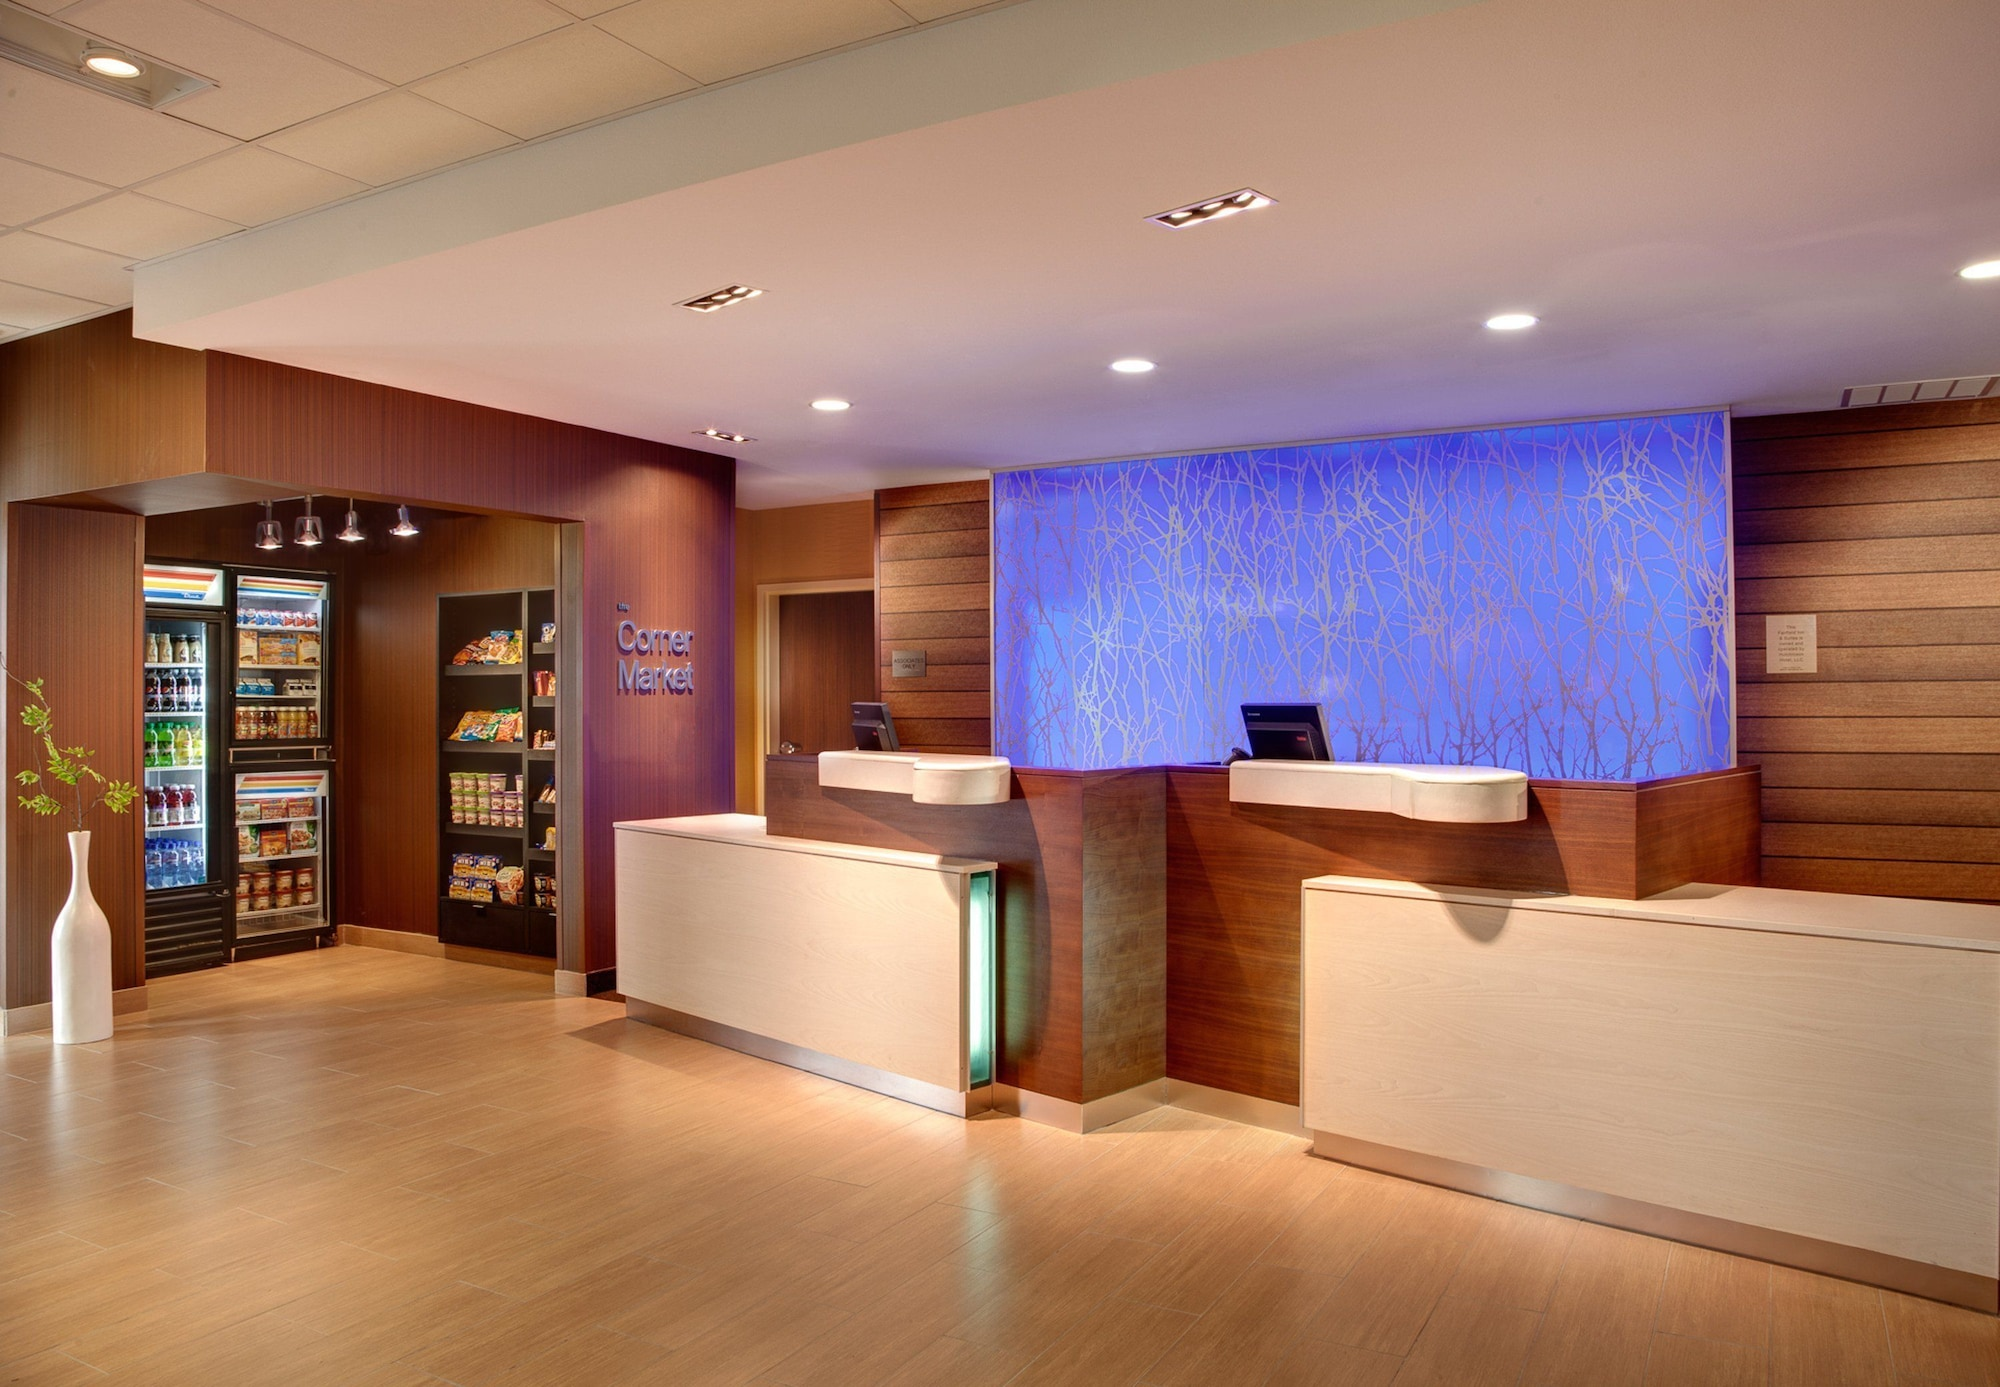 Fairfield Inn & Suites By Marriott Ann Arbor Ypsilanti